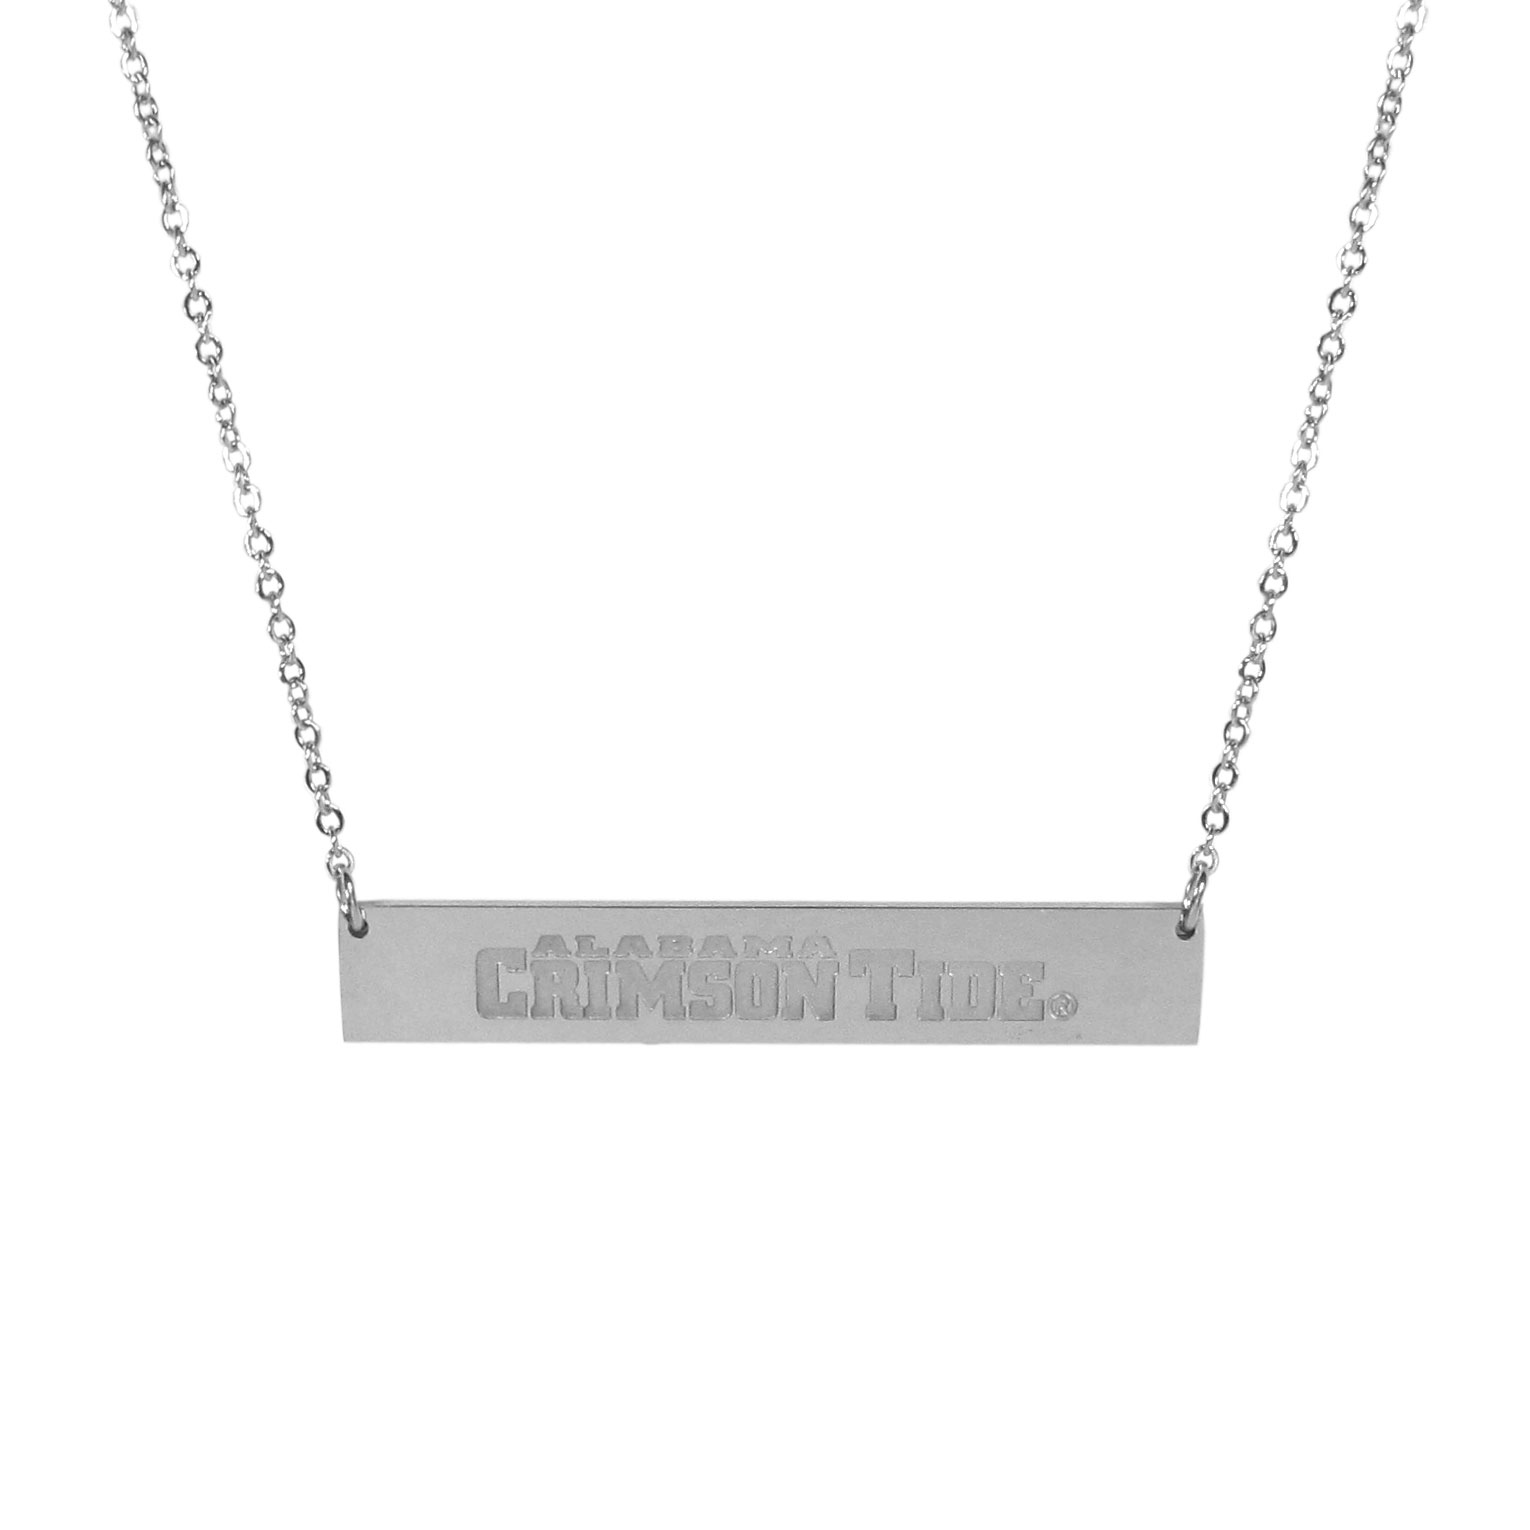 Alabama Crimson Tide Bar Necklace - Simply beautiful Alabama Crimson Tide bar necklace on a 20 inch link chain with 2 inch adjustable extender. This light-weight bar necklace has a stylish silver colored finish with the team name expertly etched on the 1.5 inch bar. Every female  fan will enjoy this contempory fashion accessory.